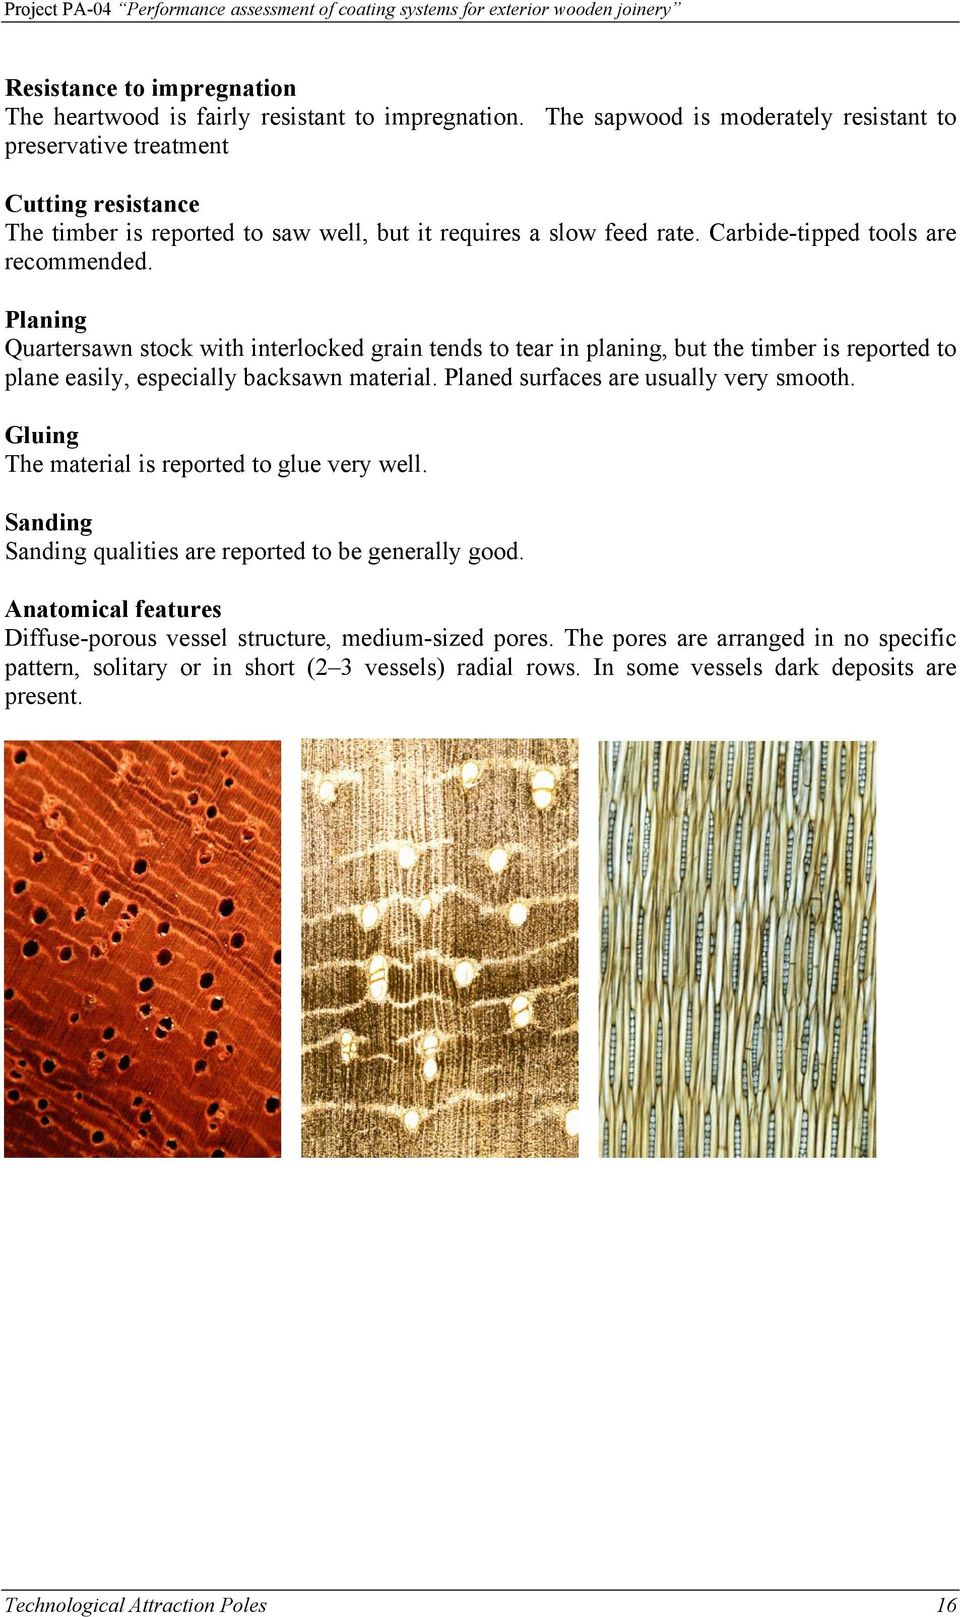 Planing Quartersawn stock with interlocked grain tends to tear in planing, but the timber is reported to plane easily, especially backsawn material. Planed surfaces are usually very smooth.